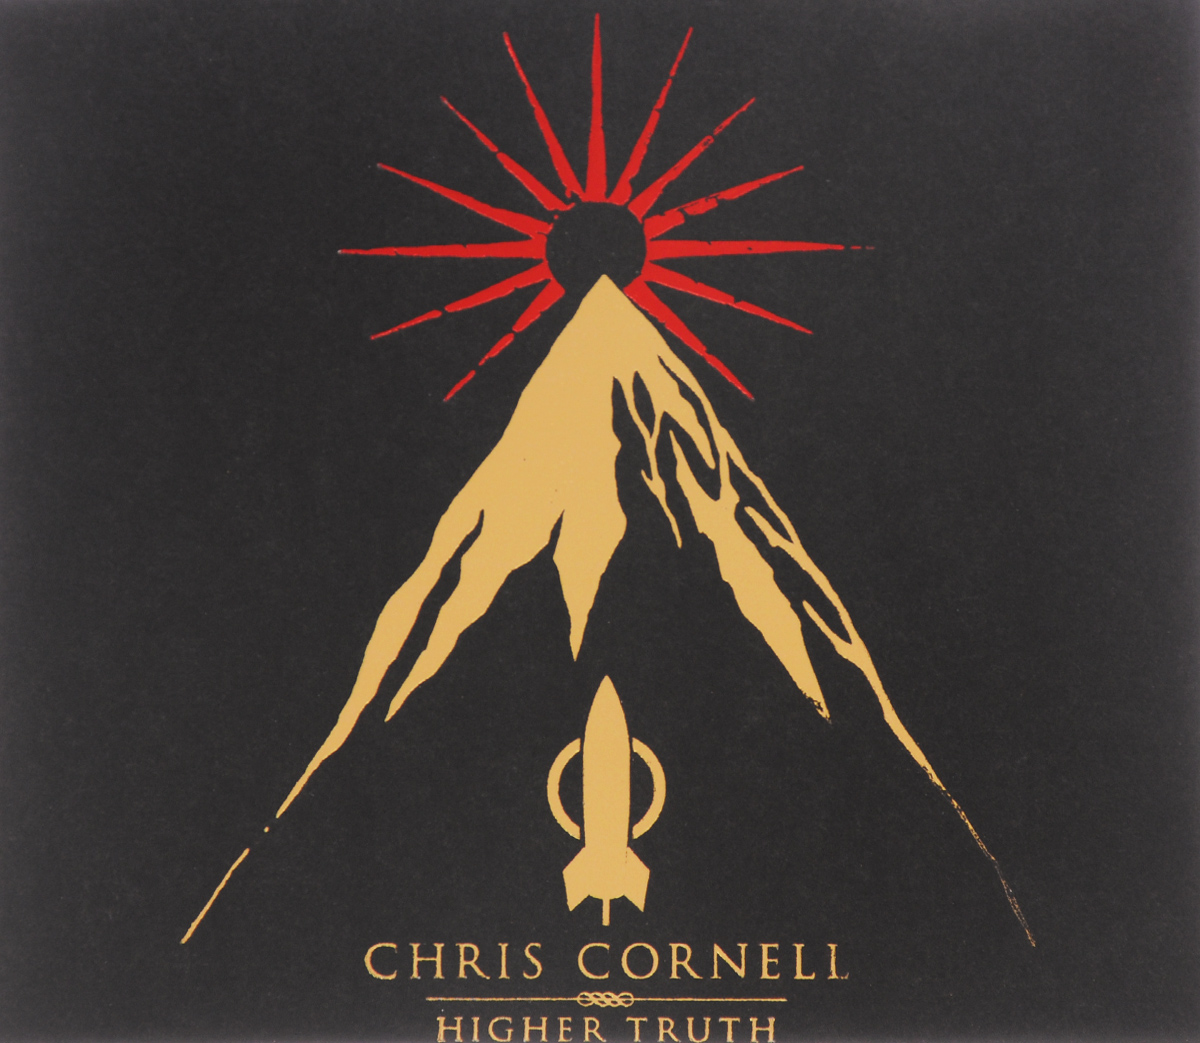 Крис Корнелл Chris Cornell. Higher Truth. Limited Edition roxy music roxy music the studio albums limited edition 8 lp